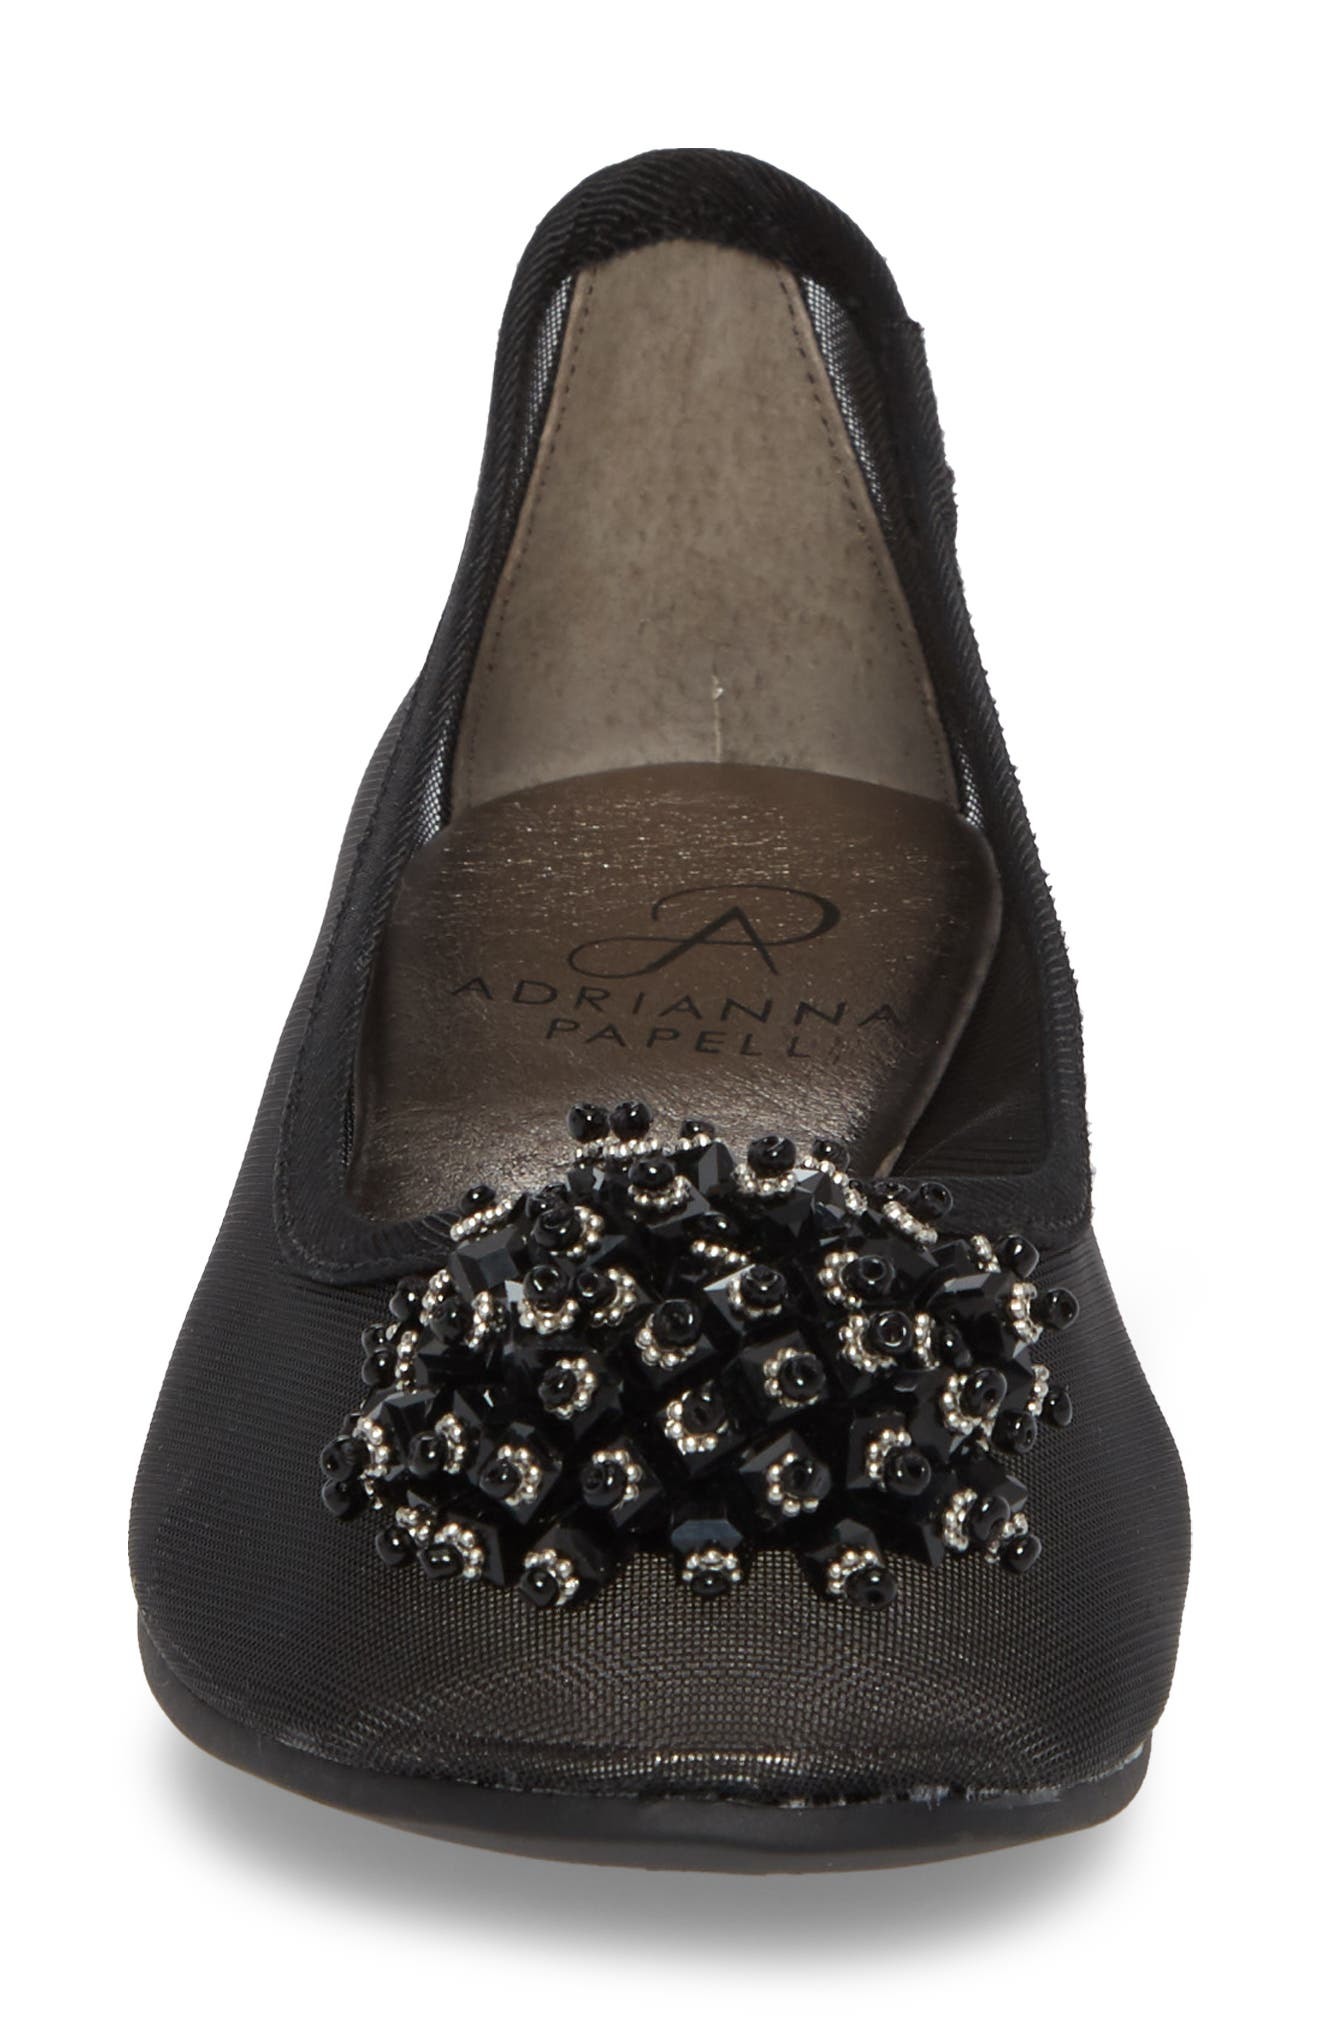 ADRIANNA PAPELL,                             Stevie Embellished Flat,                             Alternate thumbnail 4, color,                             001